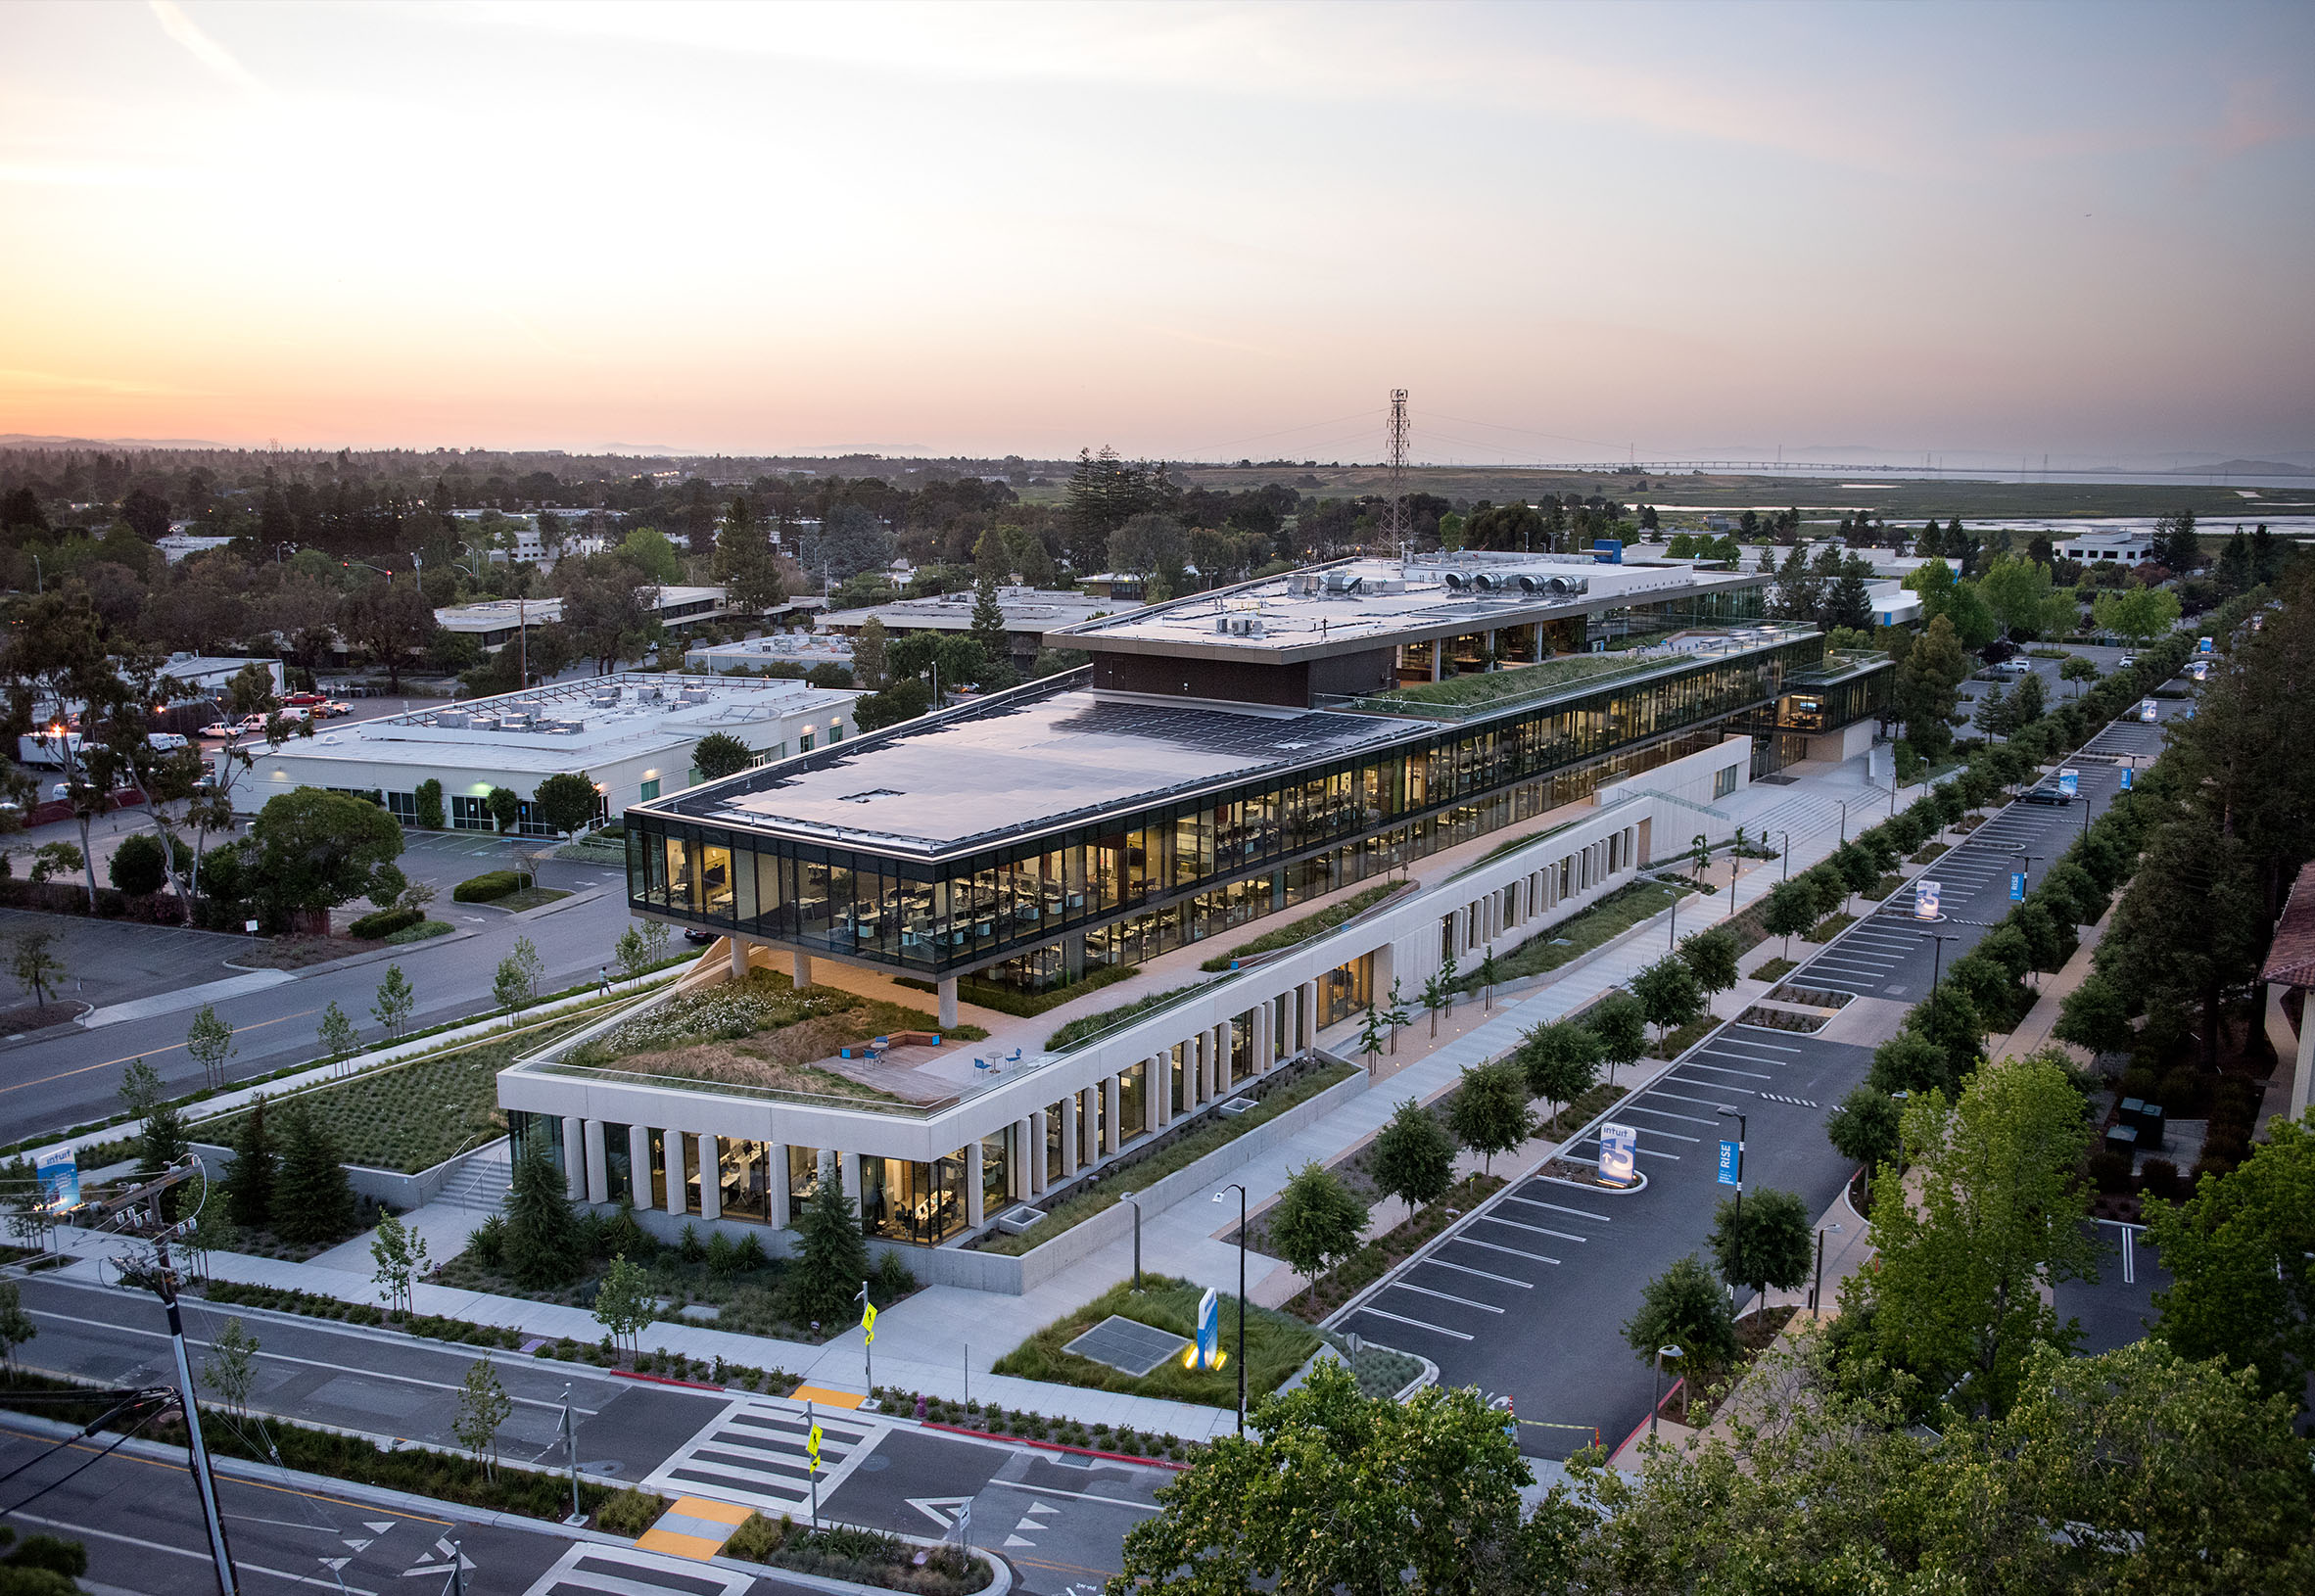 Intuit Campus View wat Sunset with Trees, Trapezoidal Lot Lines